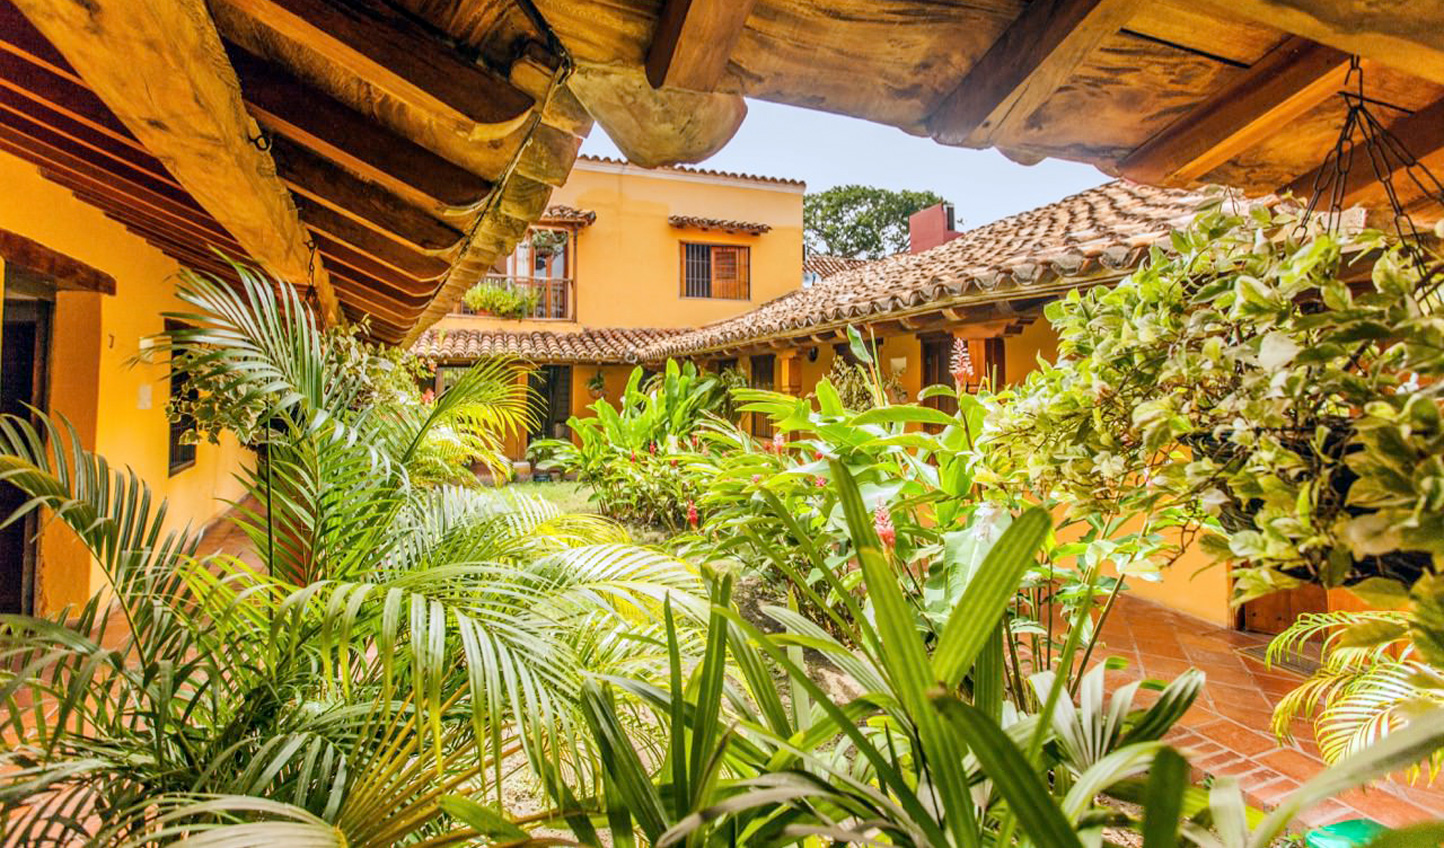 Lush greenery at La Casa Amarilla